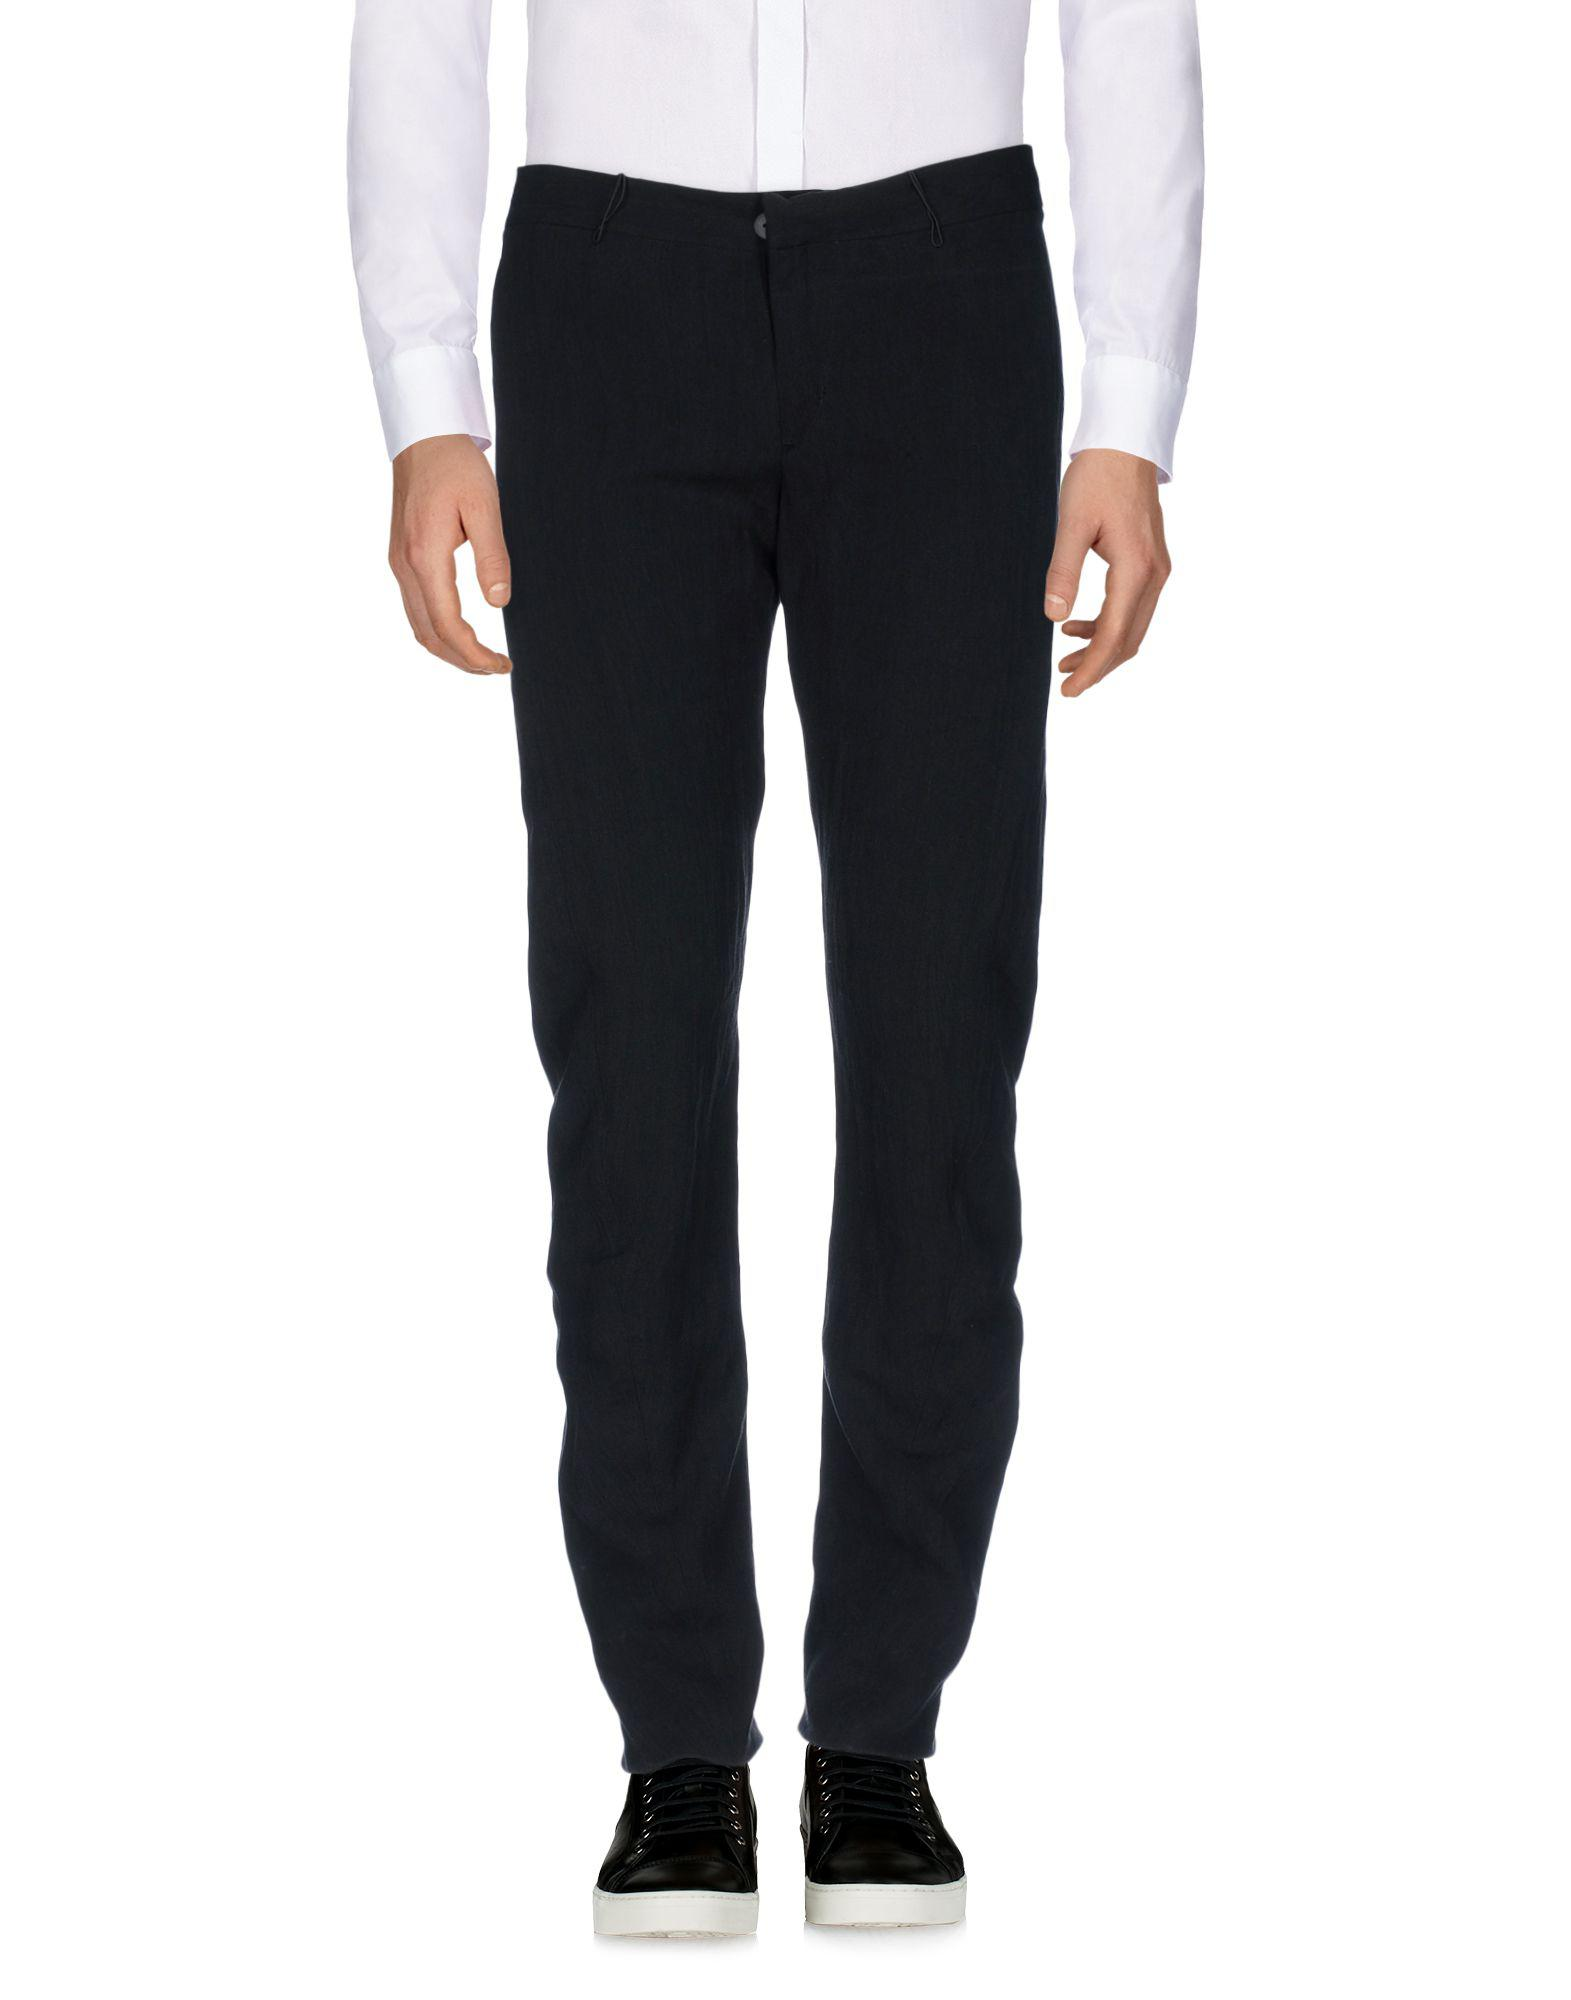 TROUSERS - Casual trousers Individual Sale Sale 2018 For Sale For Nice Discount Largest Supplier l5nEN